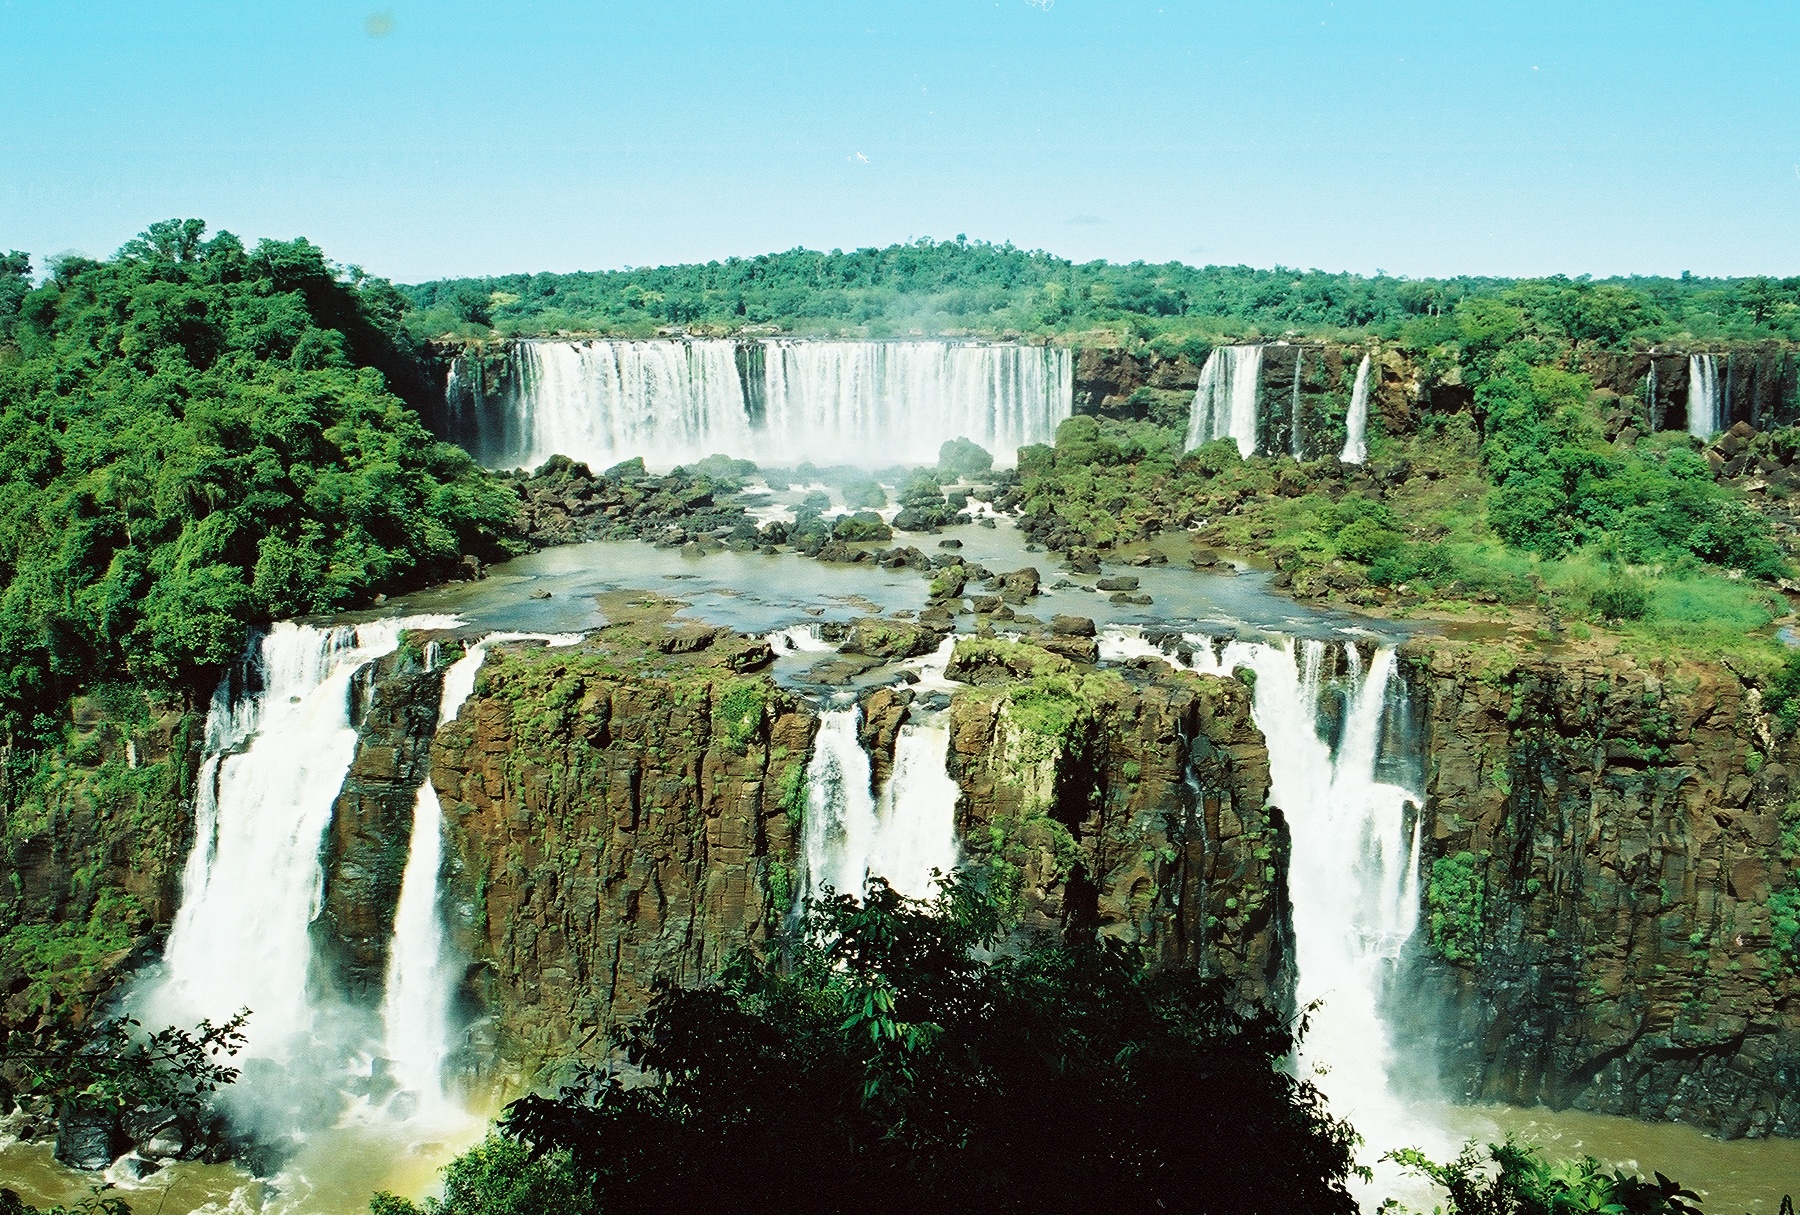 The scenery of the Iguazú falls made me recall the movie What Dreams May Come with Robin Williams. Photo: Pamy Rojas